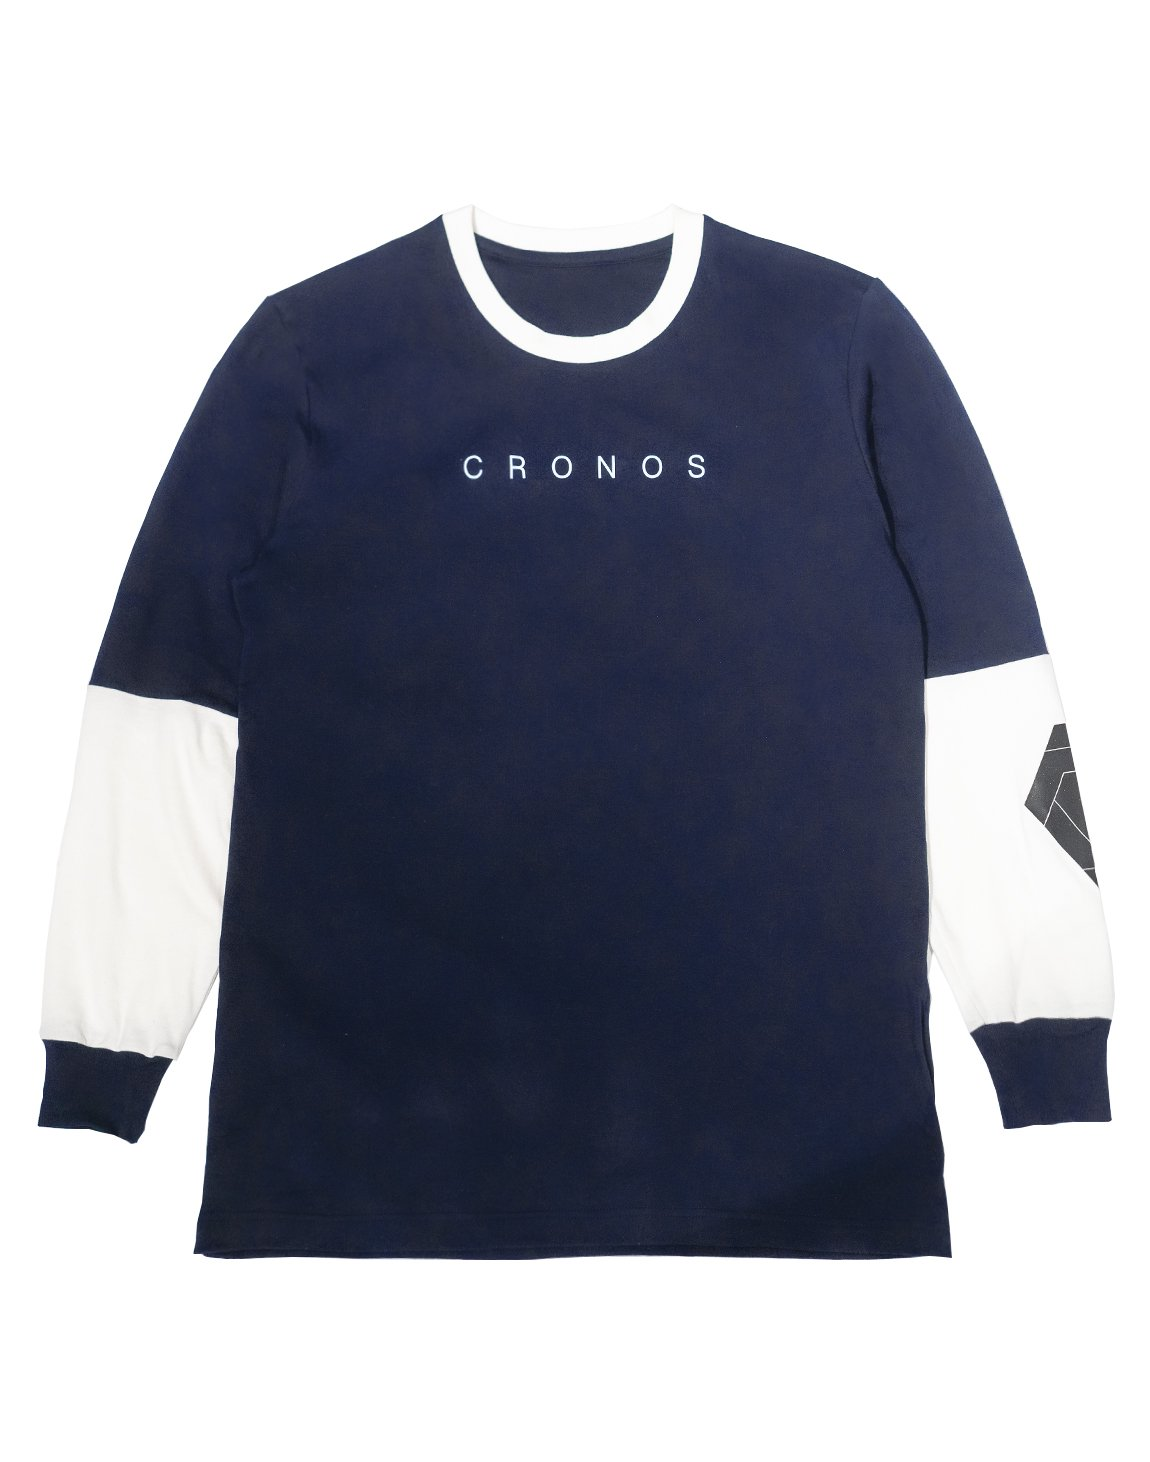 <img class='new_mark_img1' src='https://img.shop-pro.jp/img/new/icons55.gif' style='border:none;display:inline;margin:0px;padding:0px;width:auto;' />CRONOS NEW ARM LOGO LONG SLEEVE【NAVY】